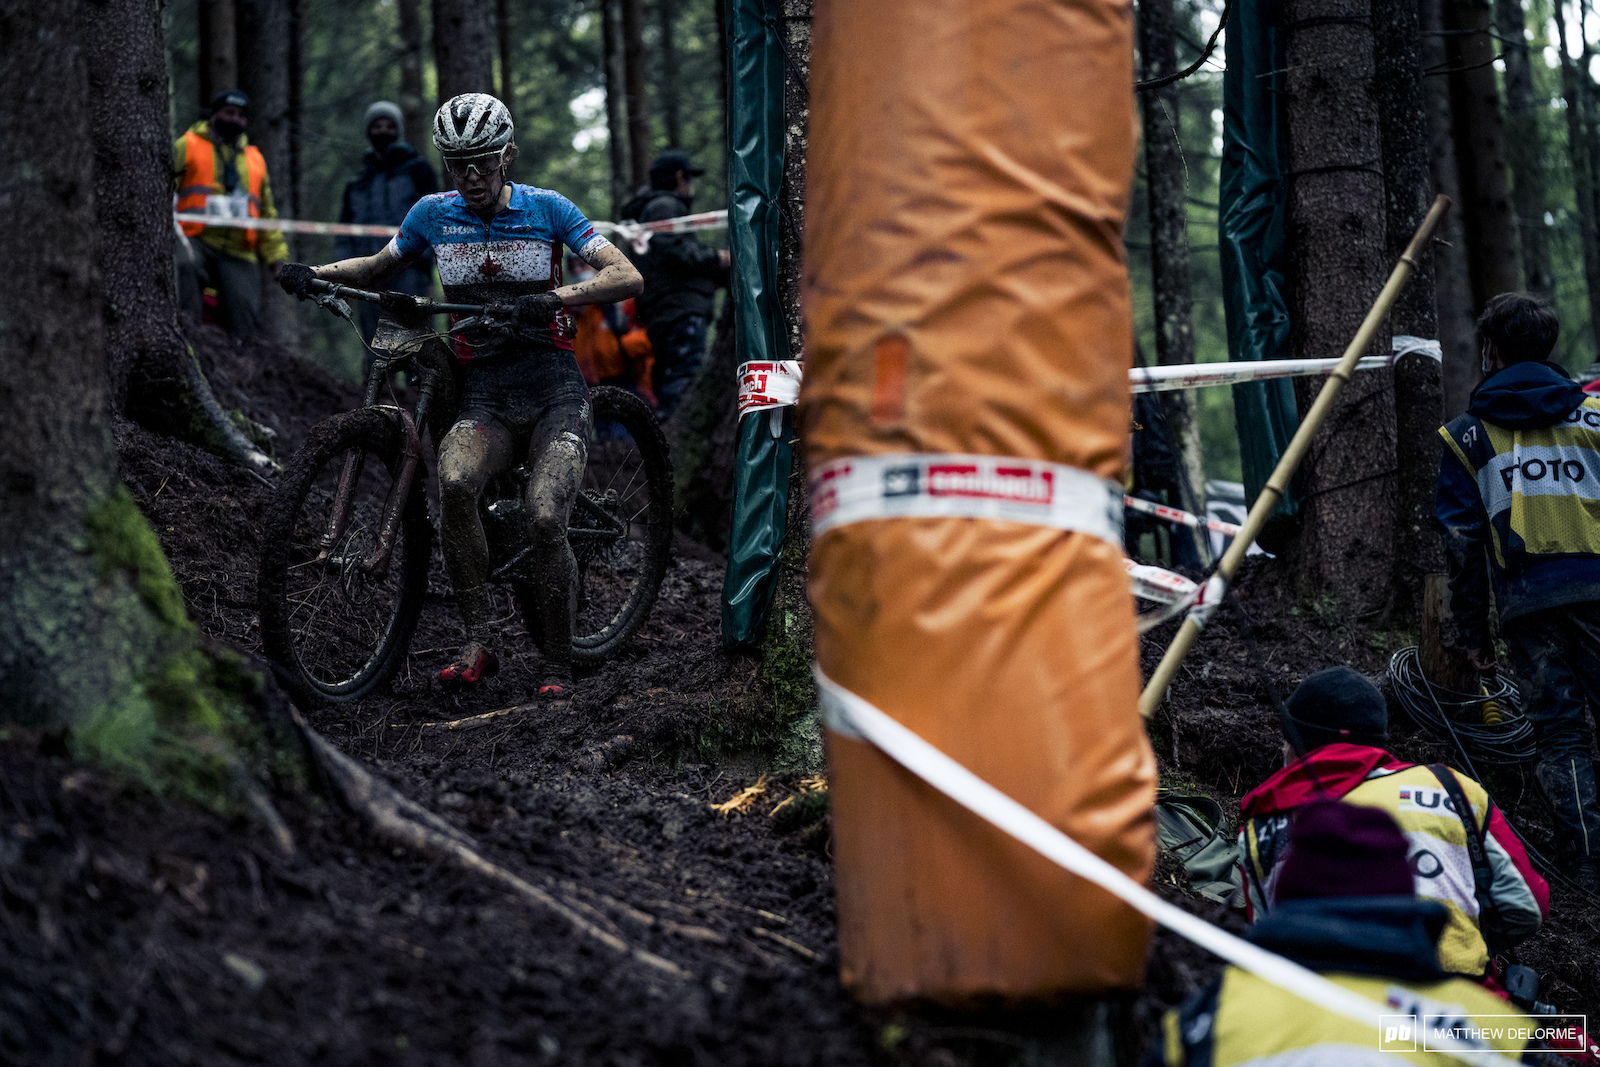 Maghalie Rochette took fifth for the women in E MTB.